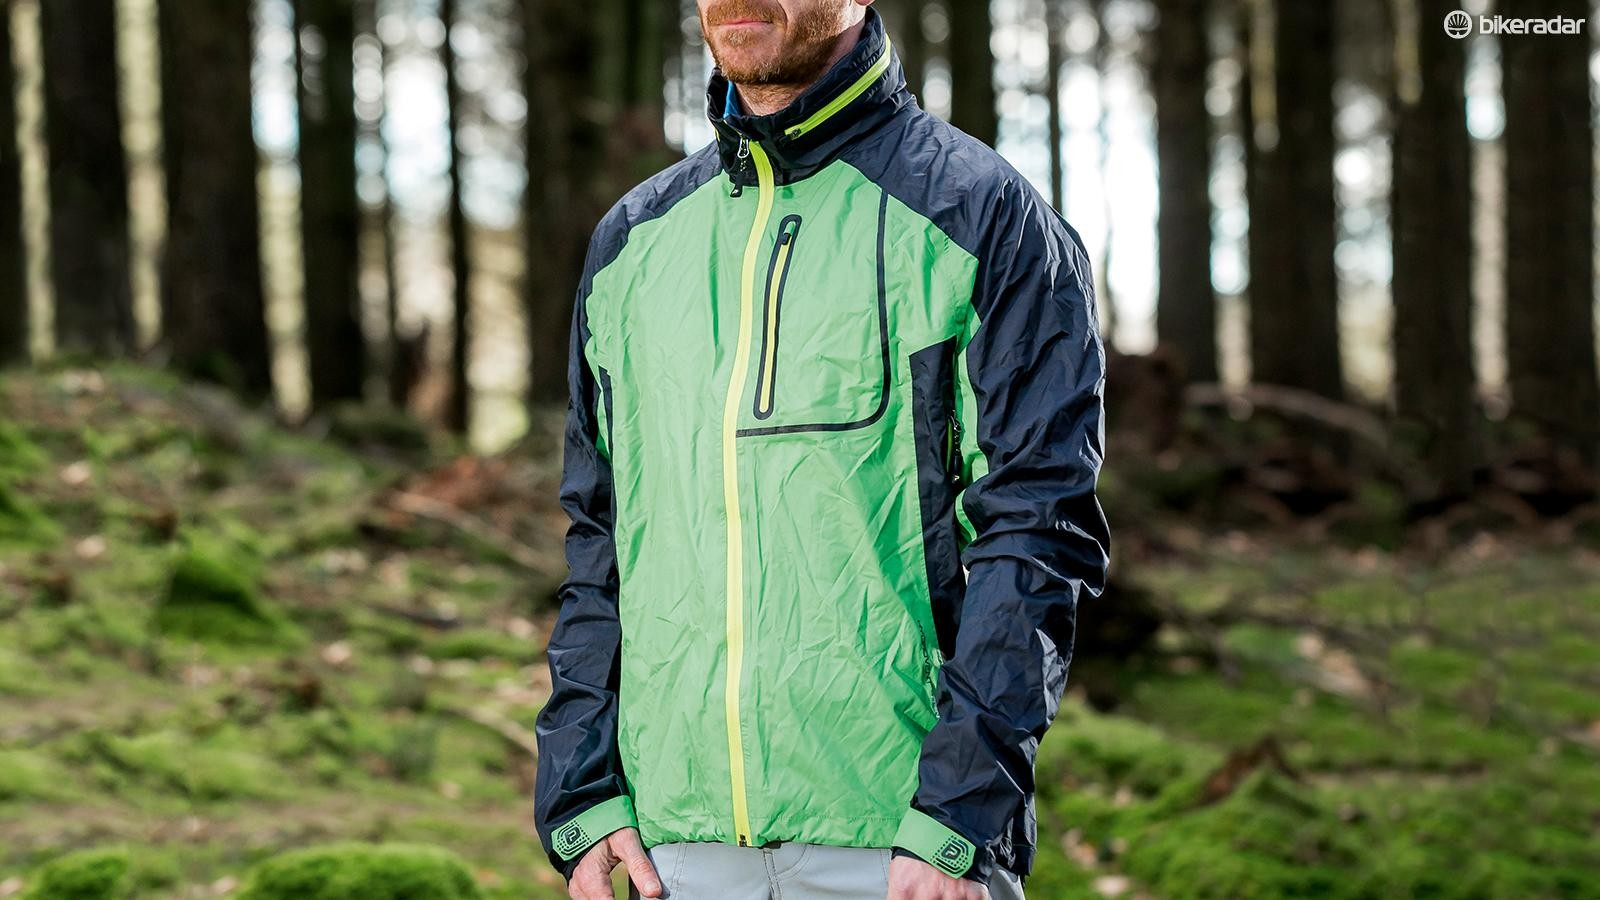 Polaris Summit jacket is a decent option but we didn't find it as comfy as some